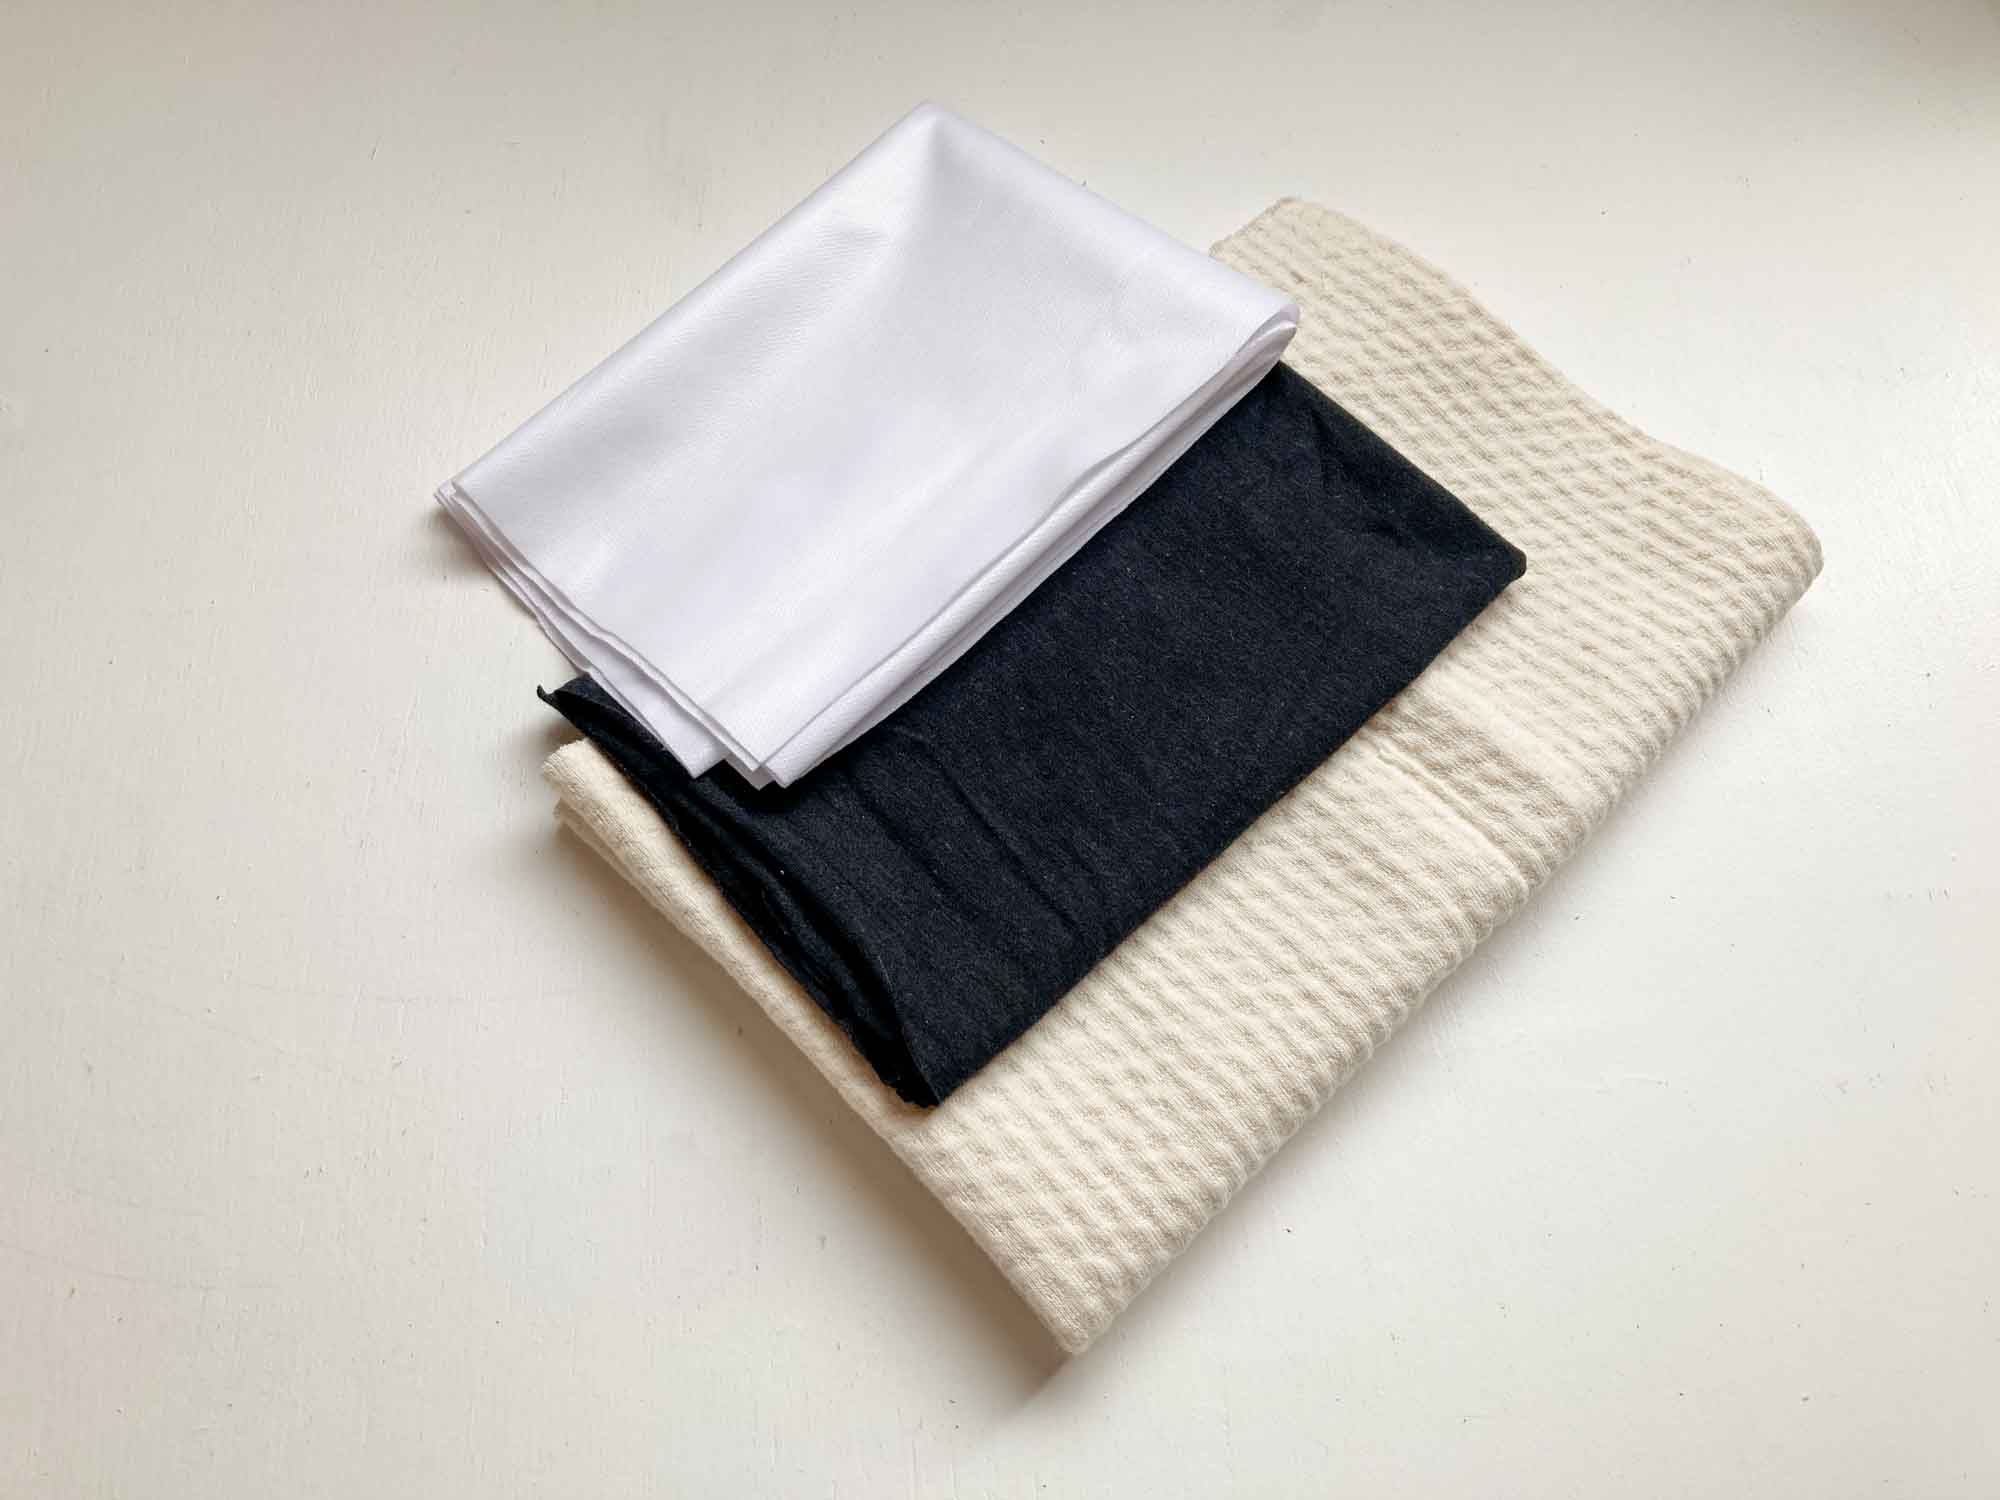 Period Panty kit Gusset fabrics only